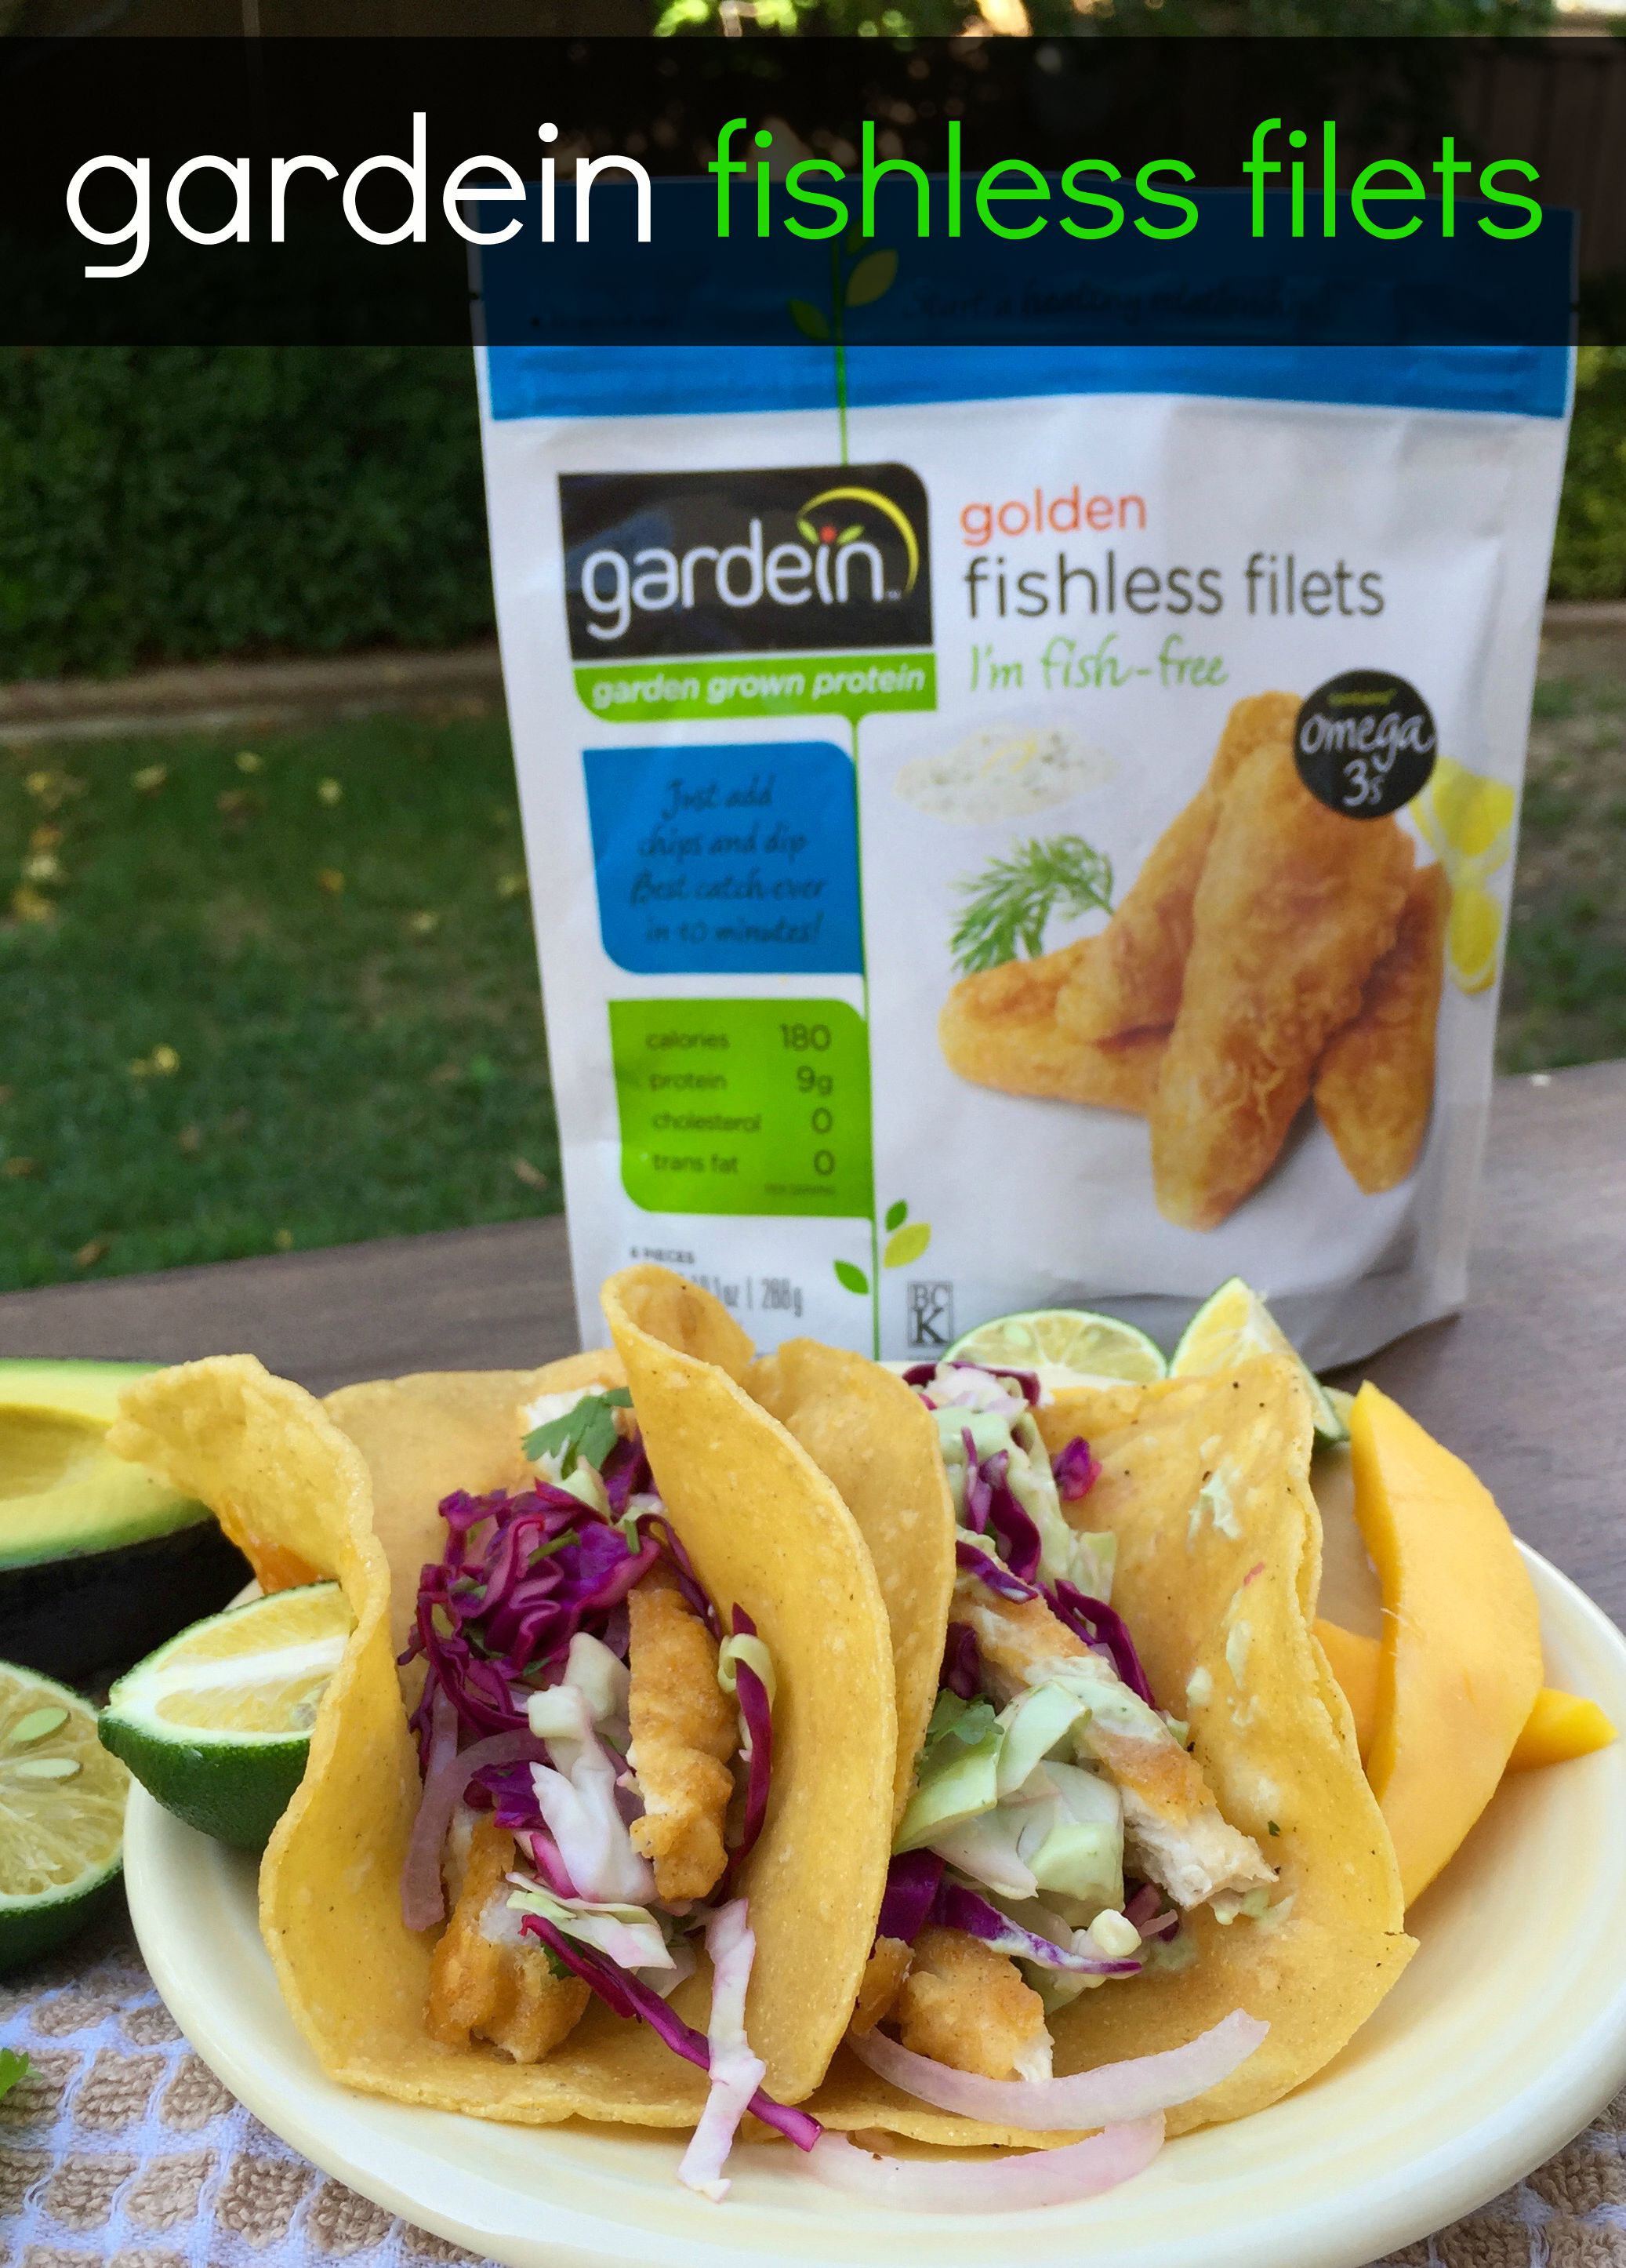 how to cook gardein fish